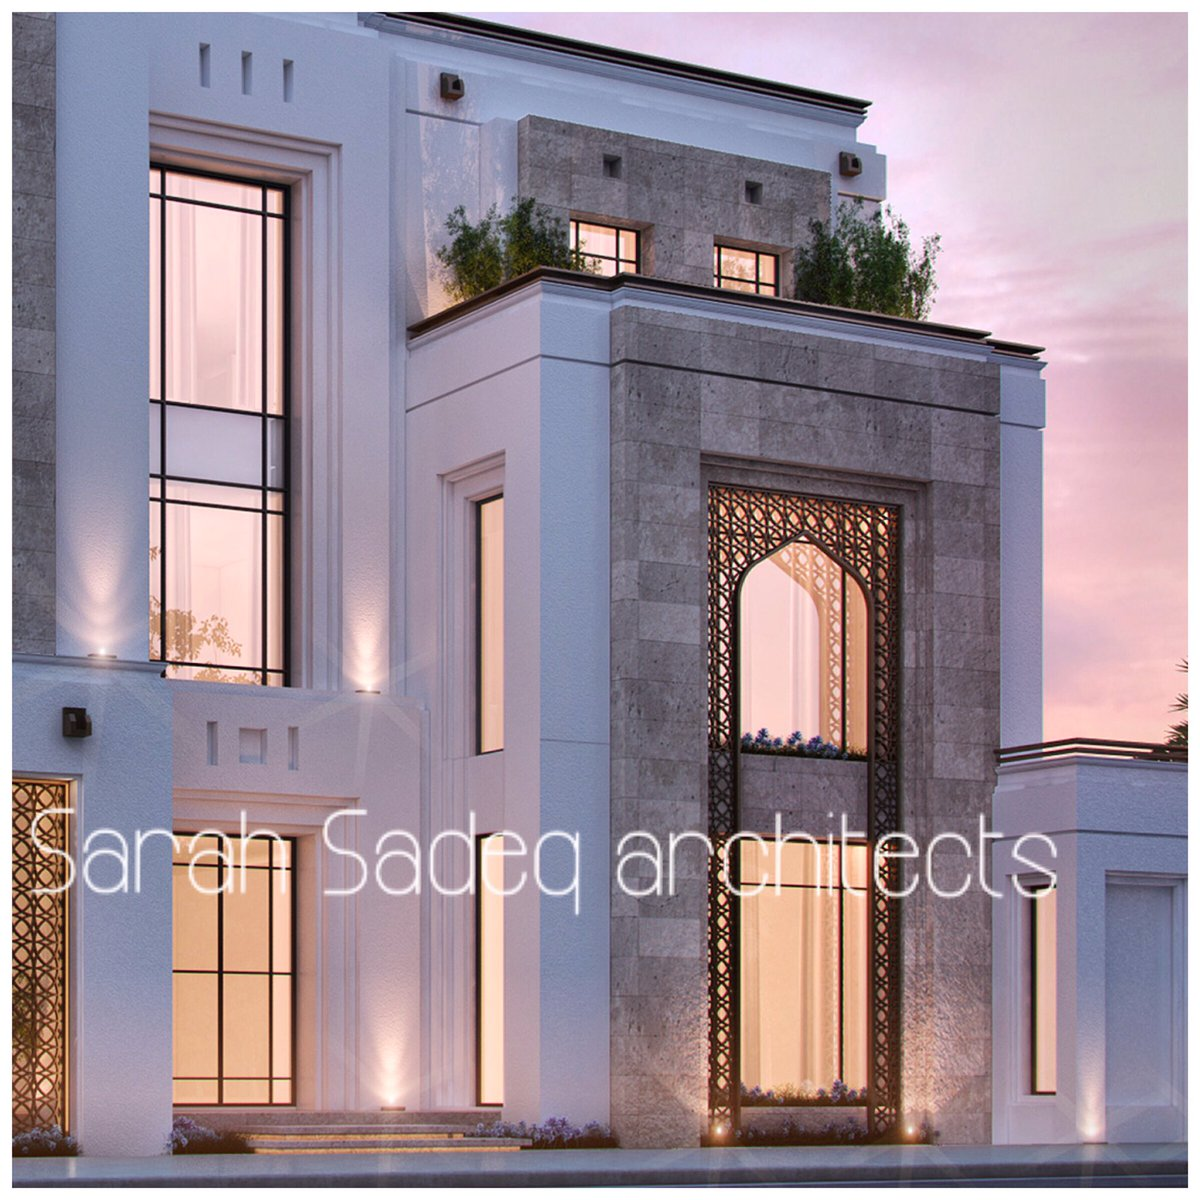 "Private Villa Sarah Sadeq Architects Kuwait: Arch. Sarah Sadeq On Twitter: ""Soon 400 M Kuwait Https://t"